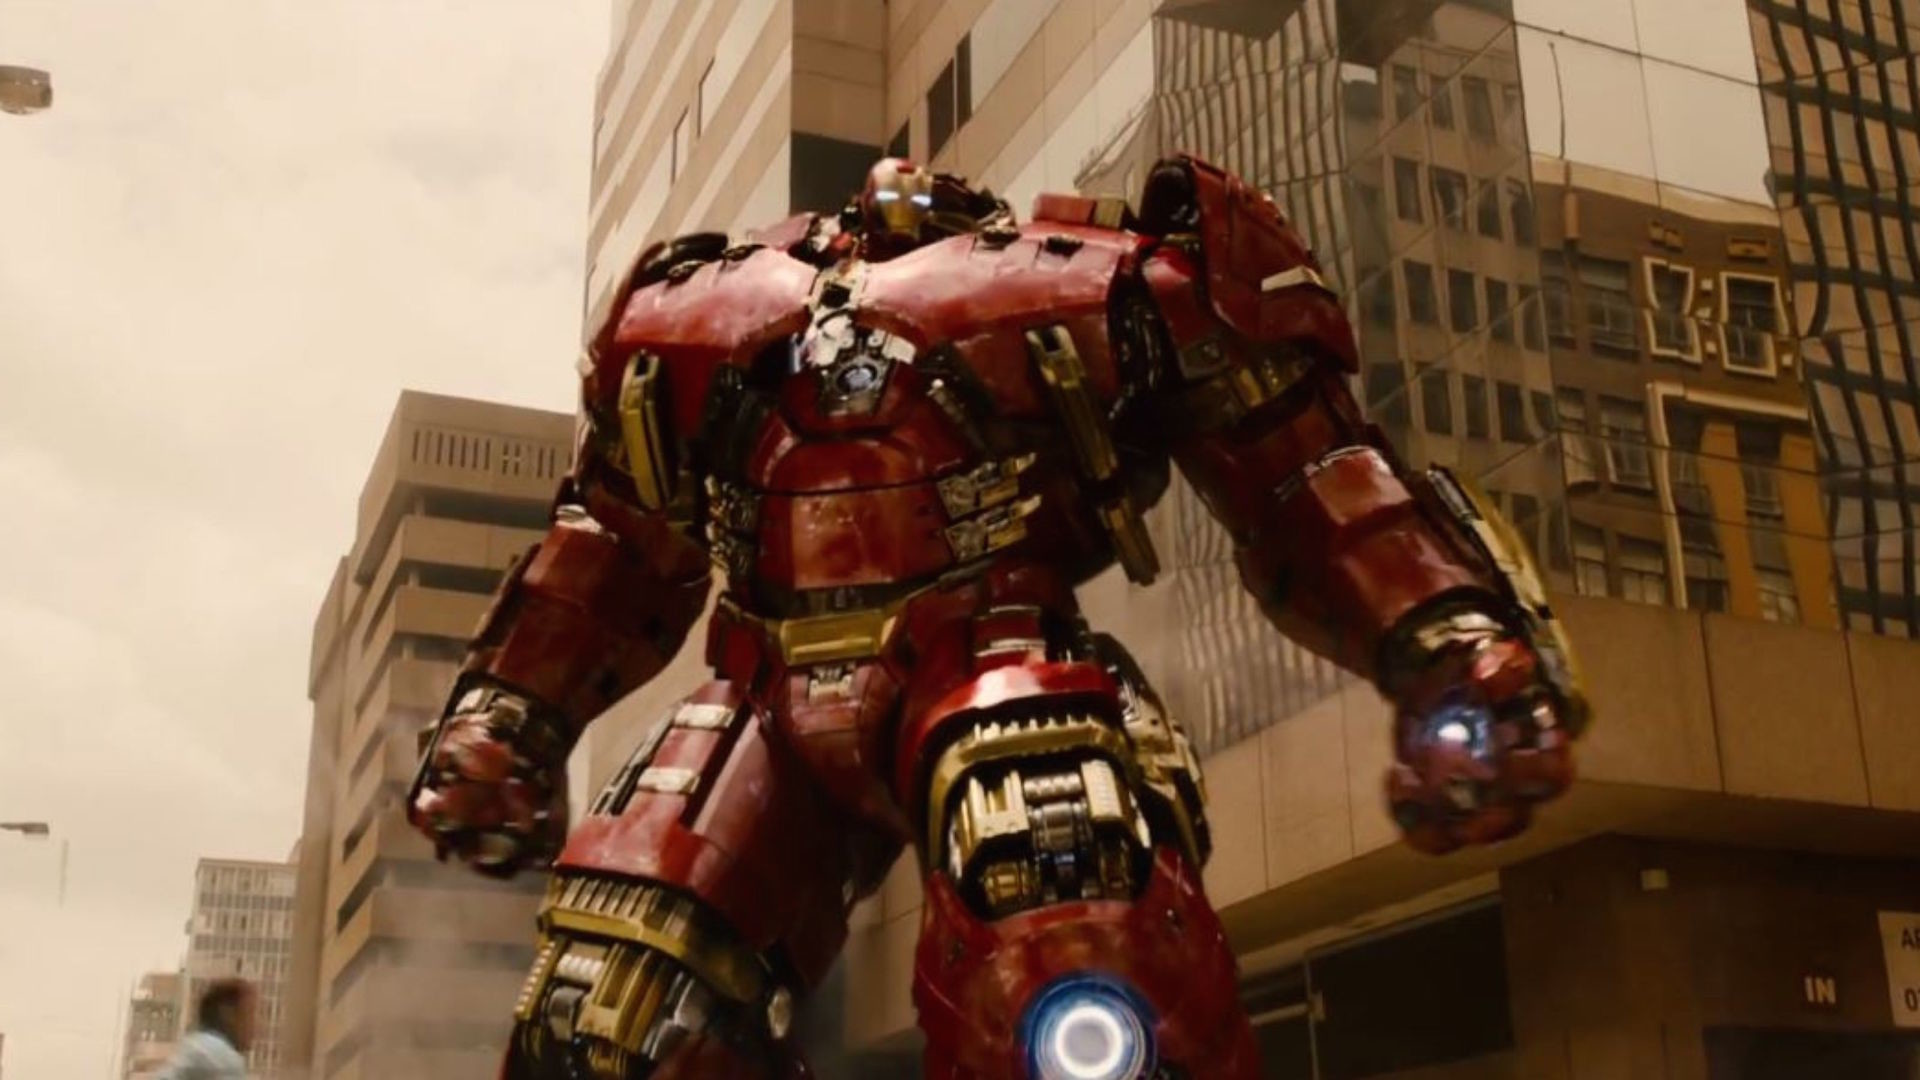 Making of Featurette for the Hulkbuster Funko Pop Figure